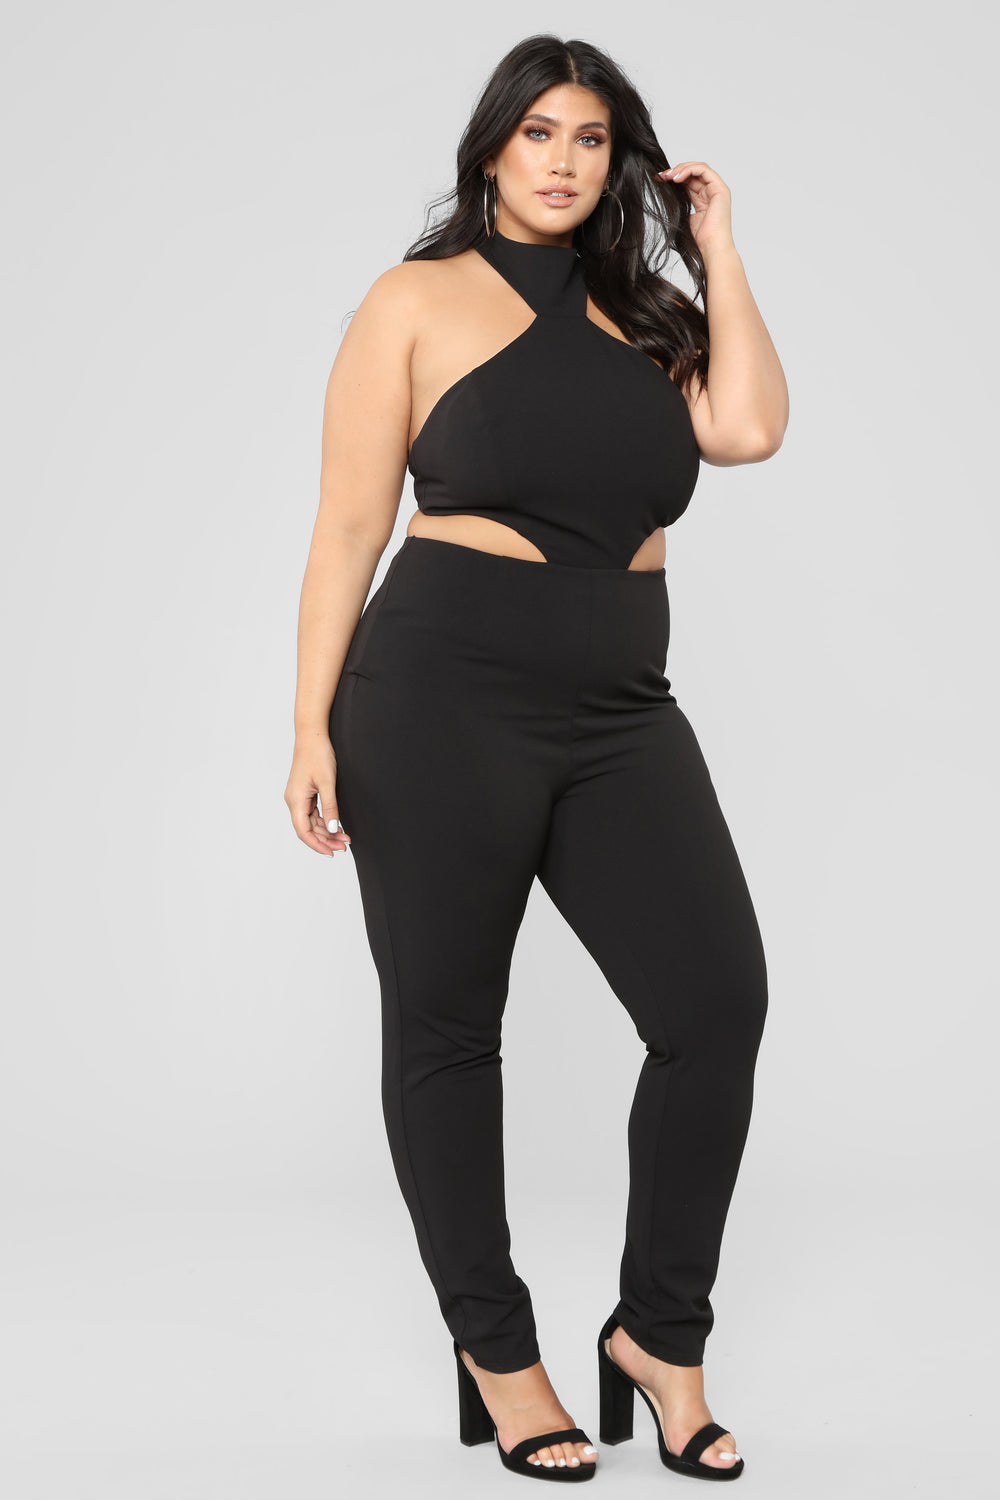 Cut To The Chase Jumpsuit - Black